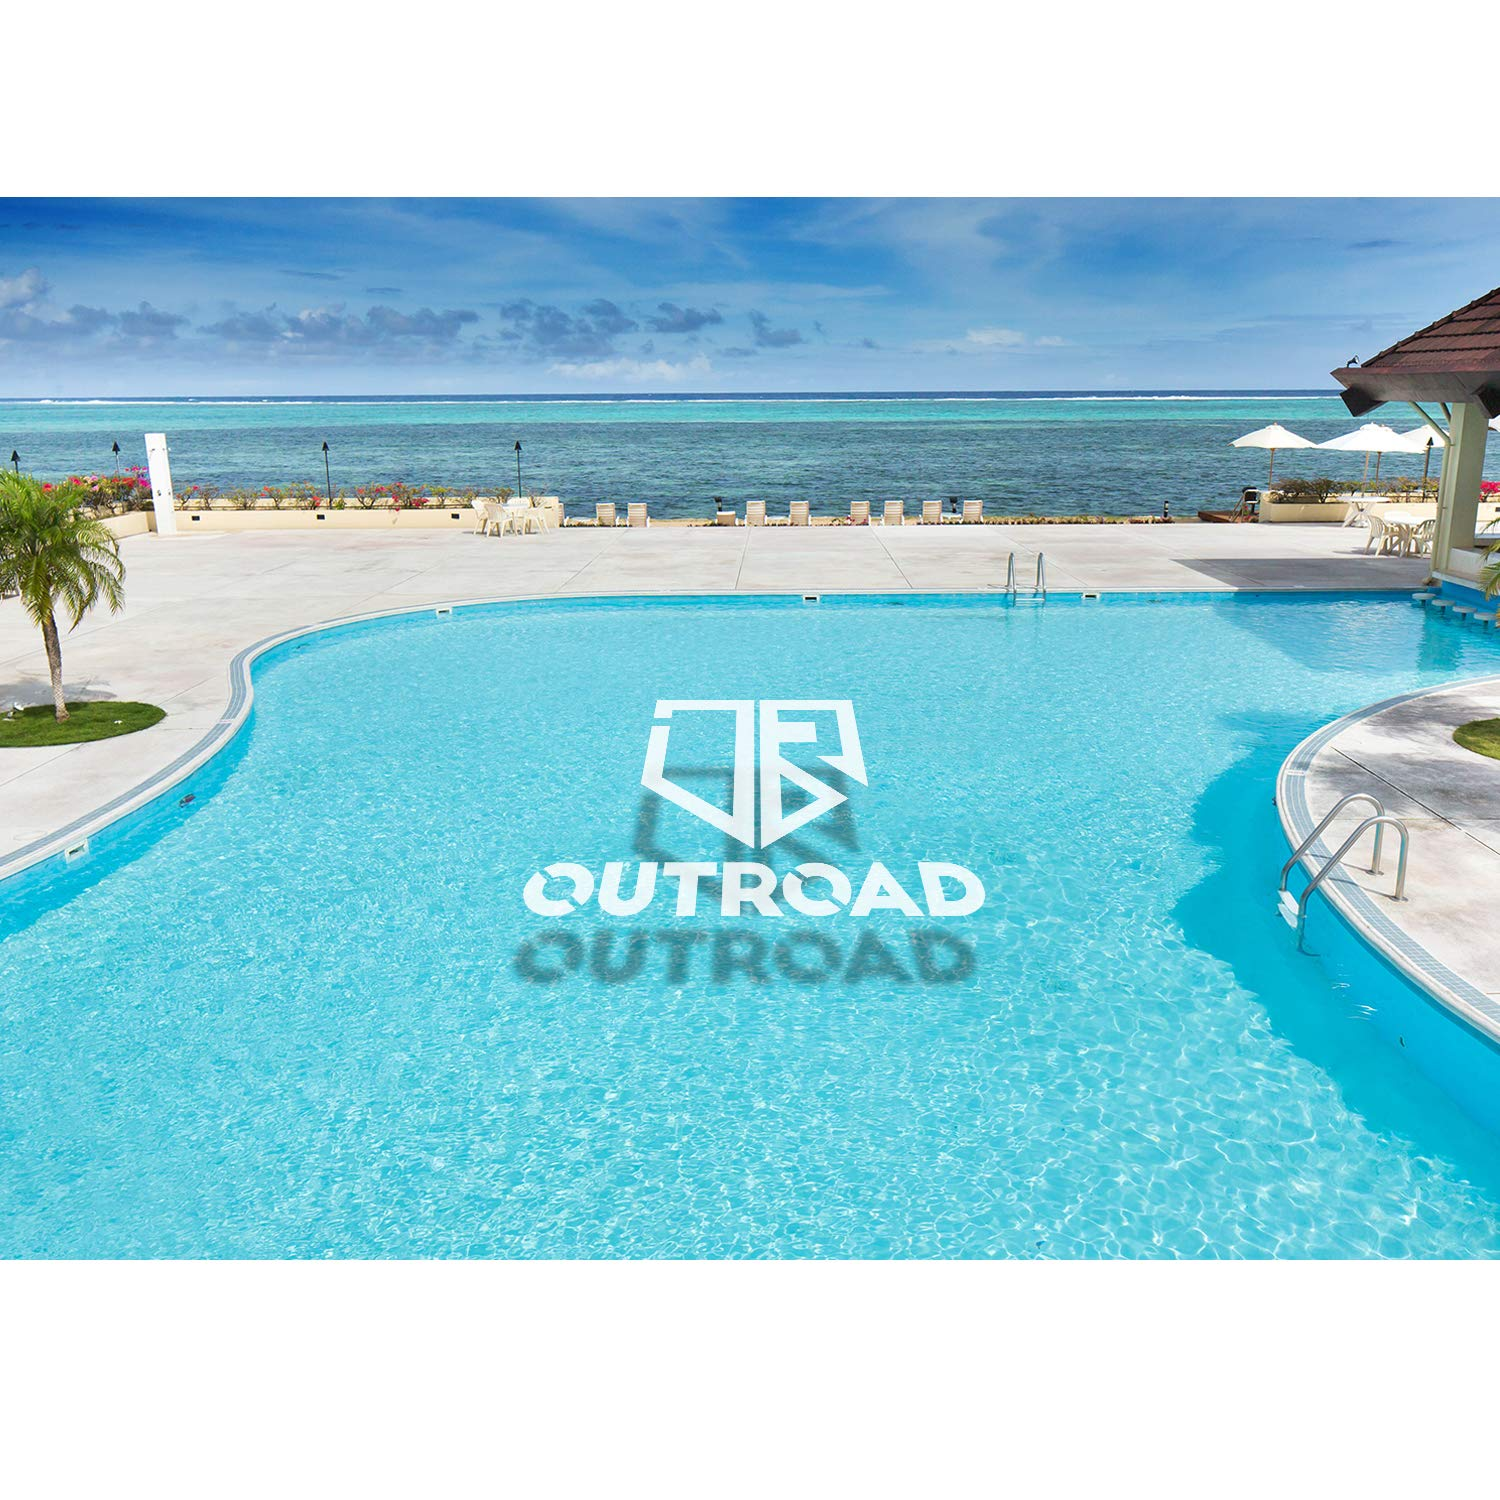 Outroad Floating Mat 12' X 6' - Recreational Floating Foam Pad Adults Kids (Blue)- Lily Pad Used in Ocean/Lake by OUTROAD OUTDOOR CAMPING GARDEN PATIO (Image #7)